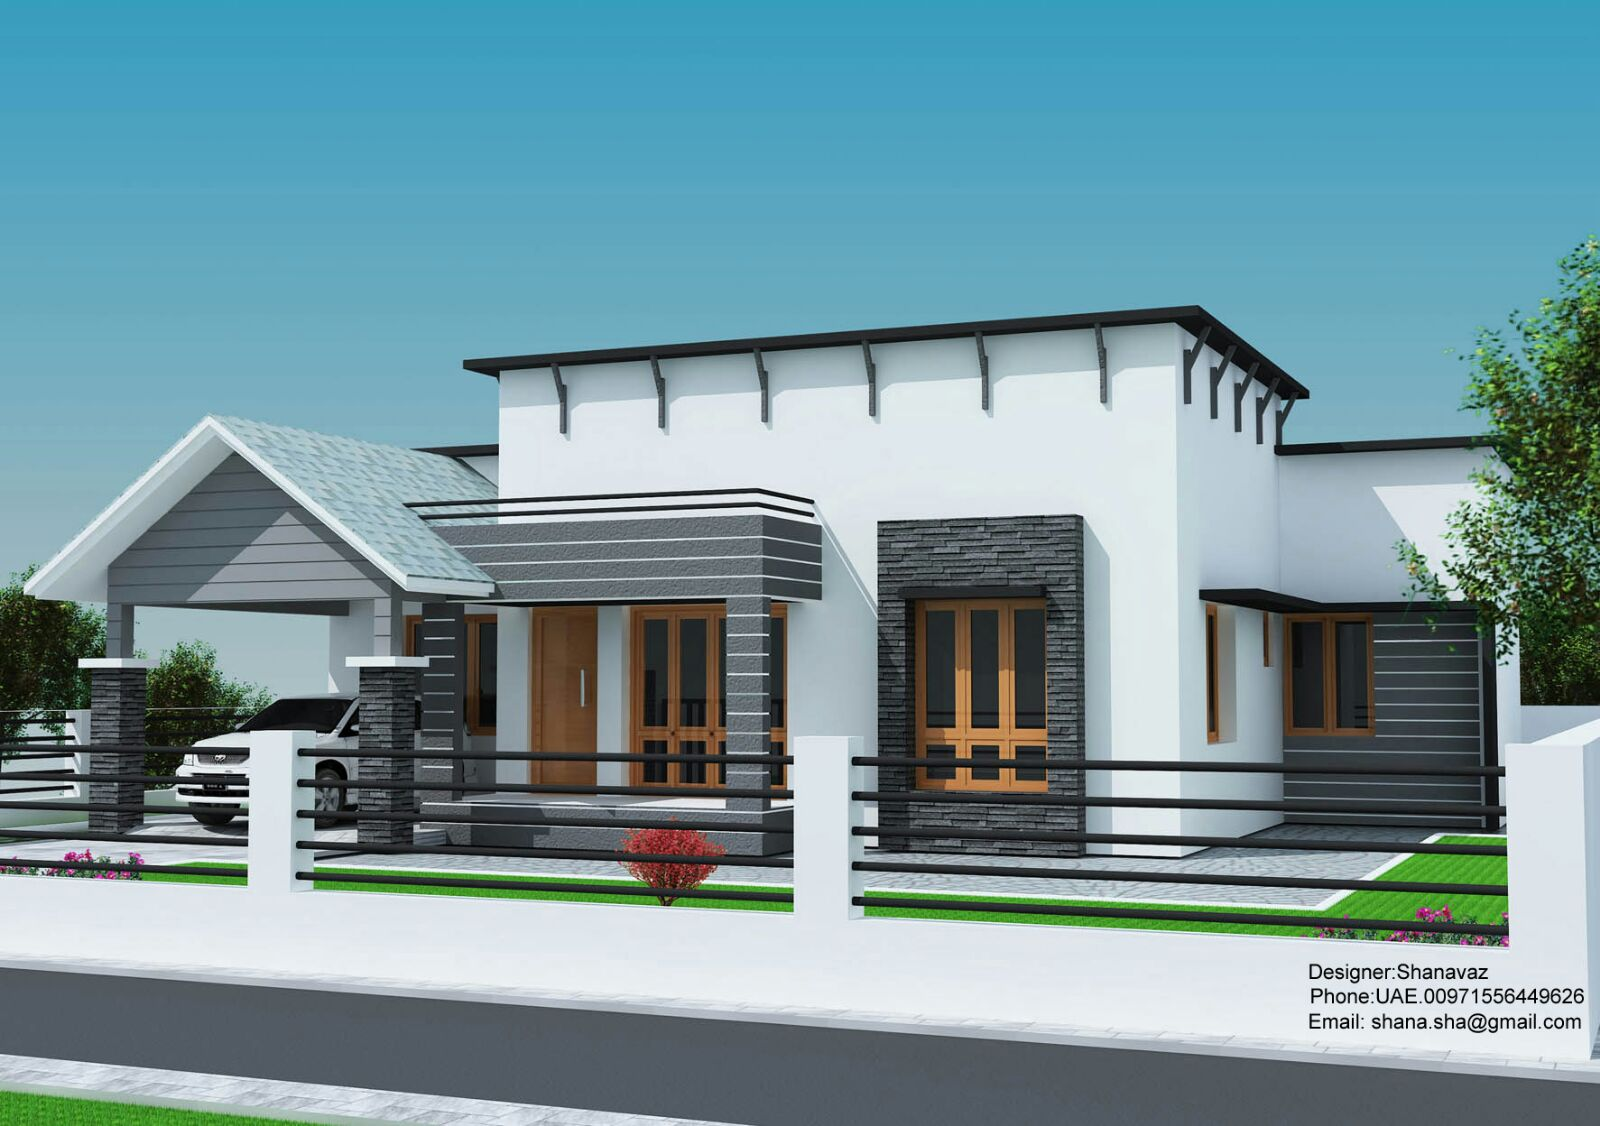 1300 sq ft single floor contemporary home design for One level home designs